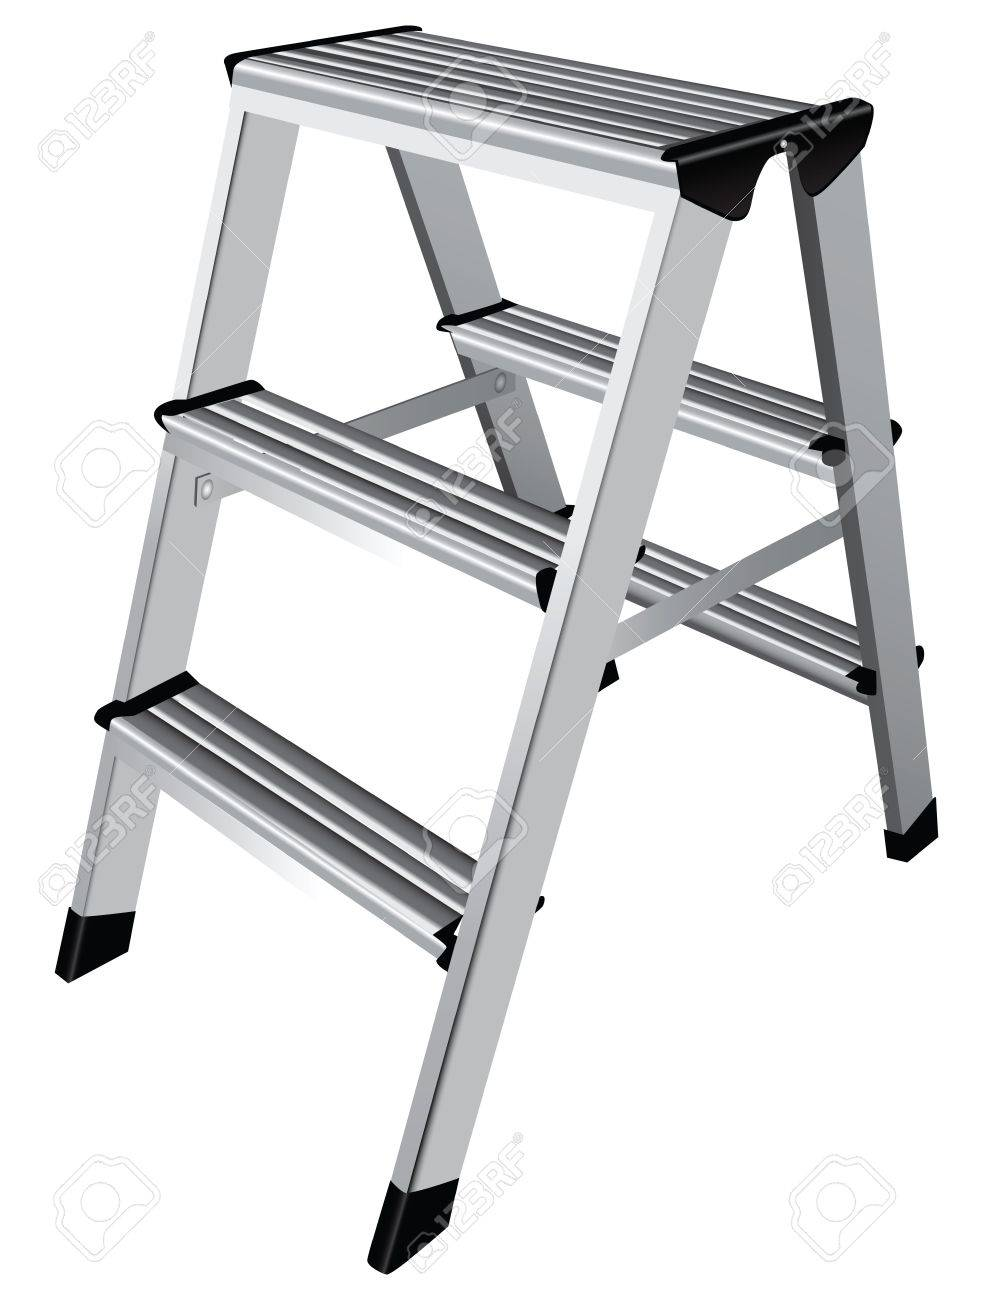 Easy Step Ladder Two Steps Vector Illustration Royalty Free Cliparts Vectors And Stock Illustration Image 21152114